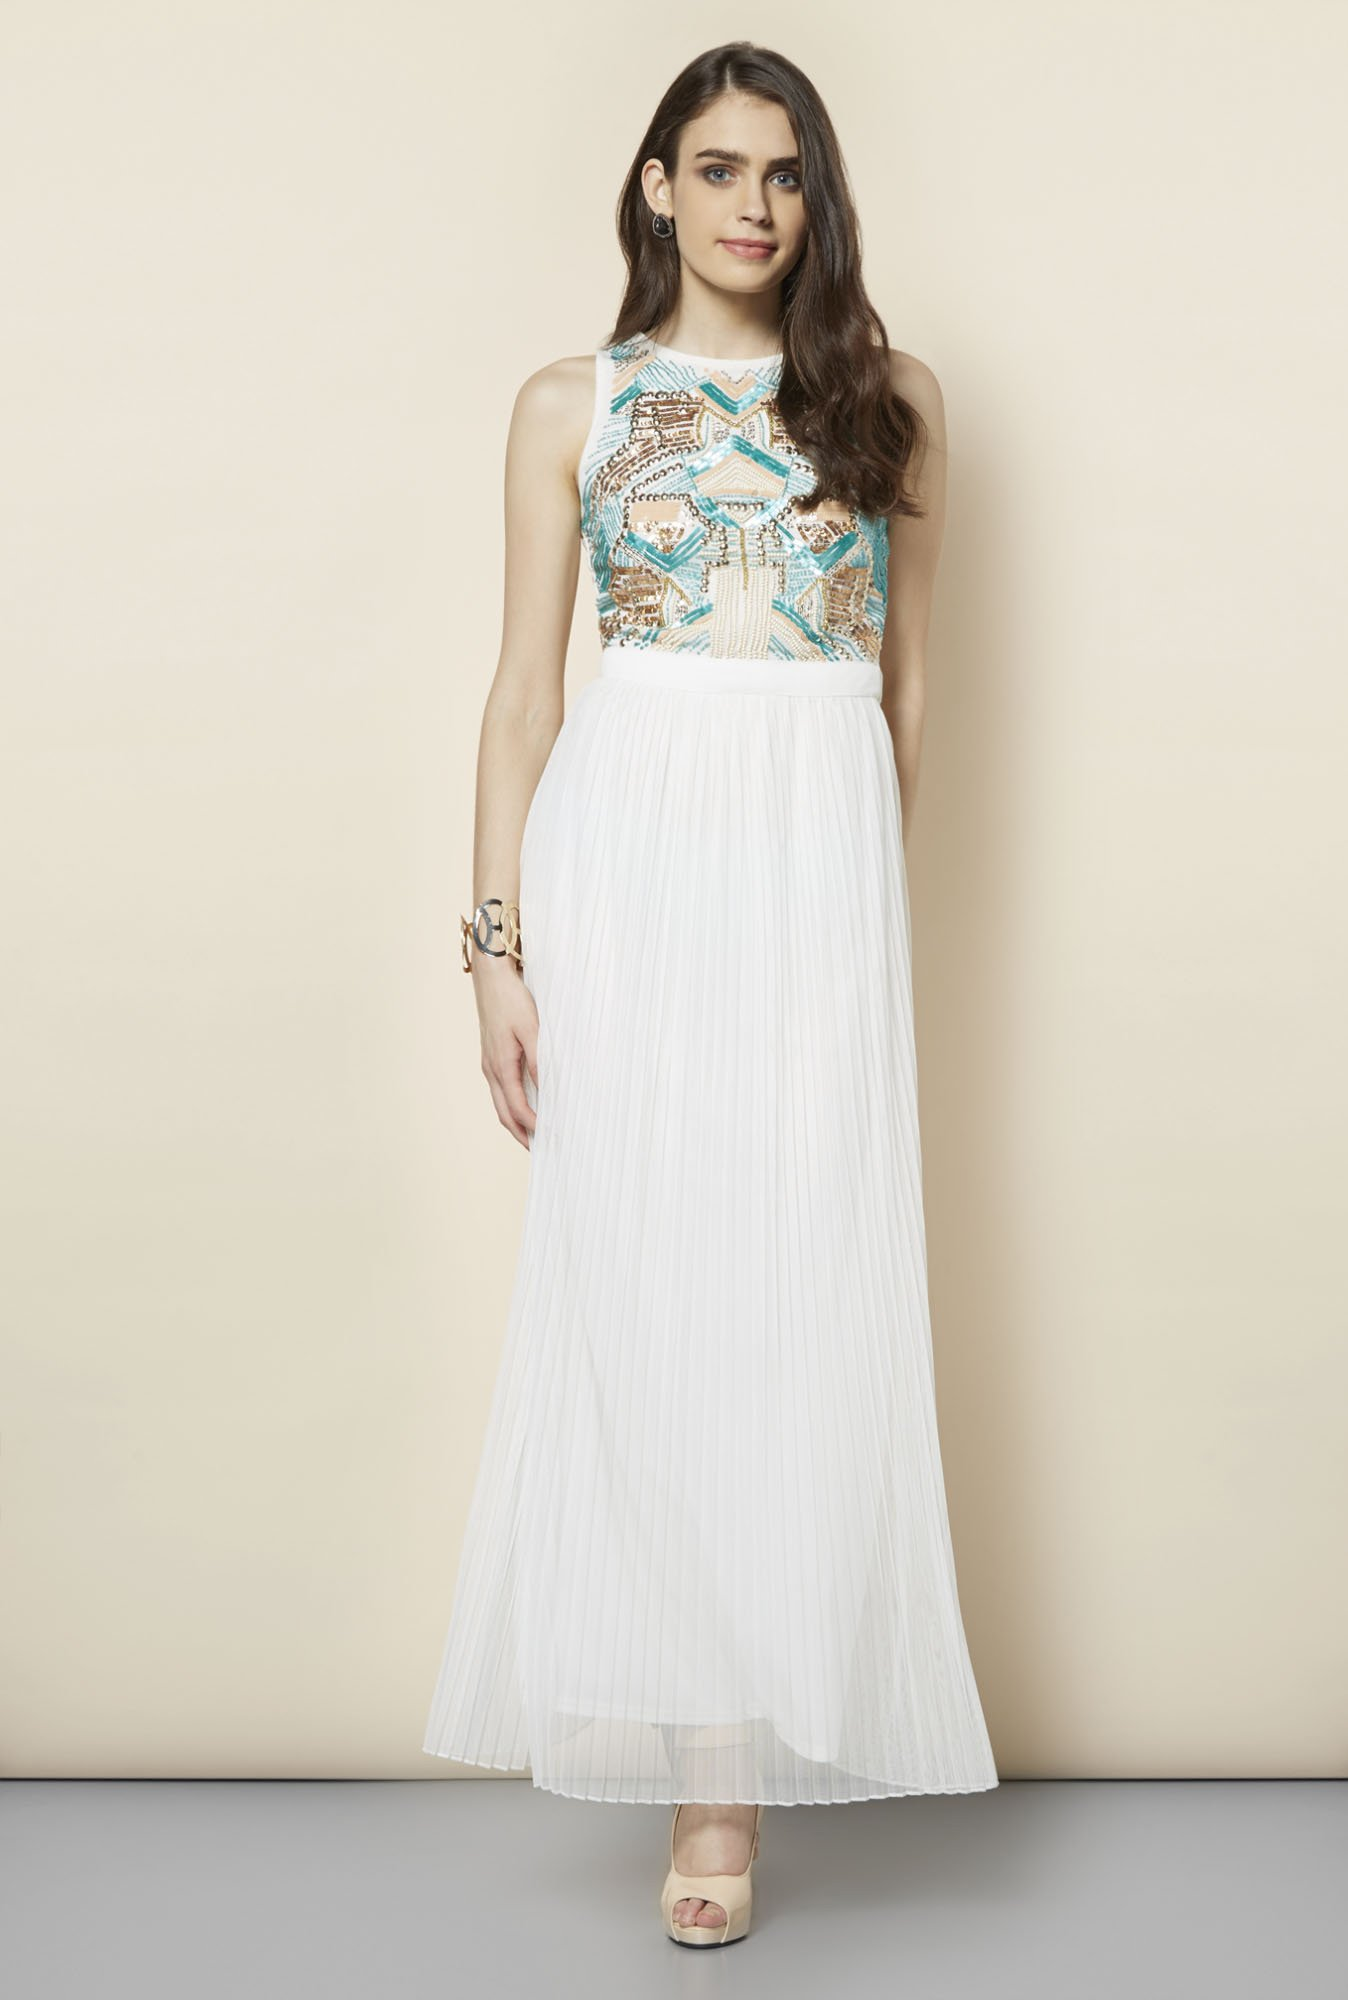 FG-4 Cream Embellished Maxi Dress